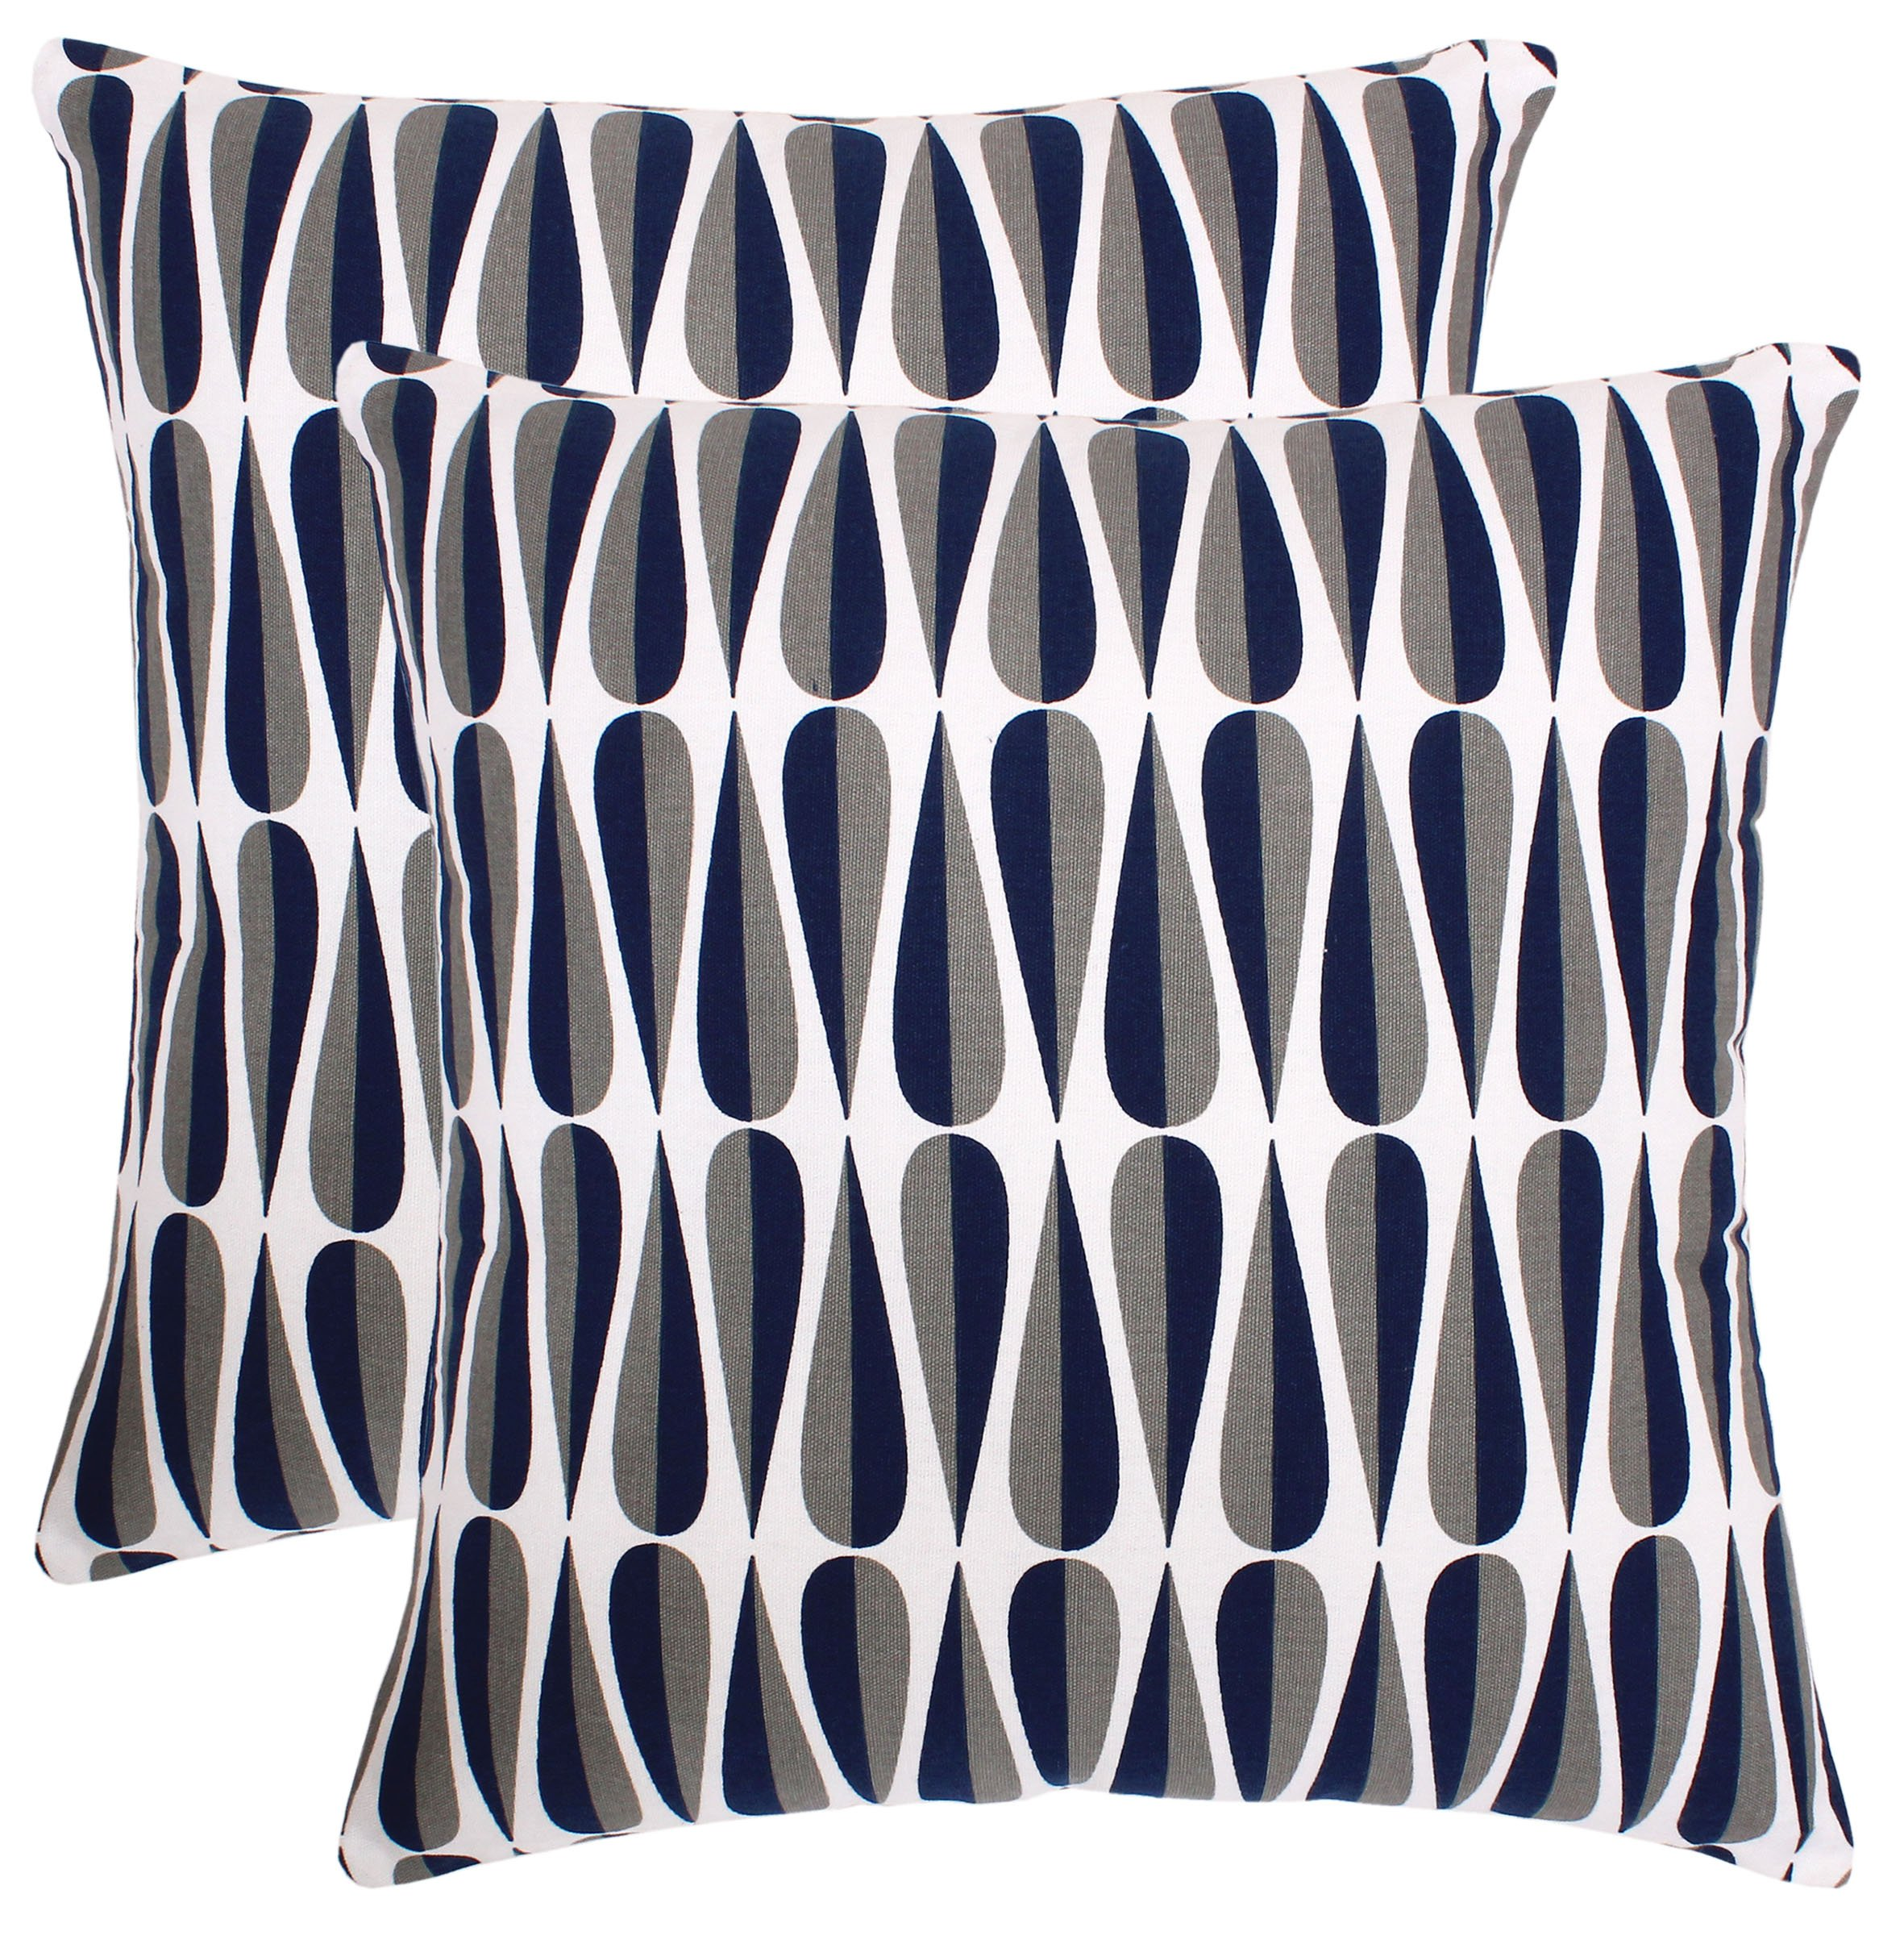 Pack of 2 Accent Decorative Throw Pillow Covers Cushion Cases Cushion Covers Pillowcases in Cotton Canvas with Hidden Zipper Slipcovers for Couch Sofa Bed (18'' x 18'') (18'' x 18'', Navy)